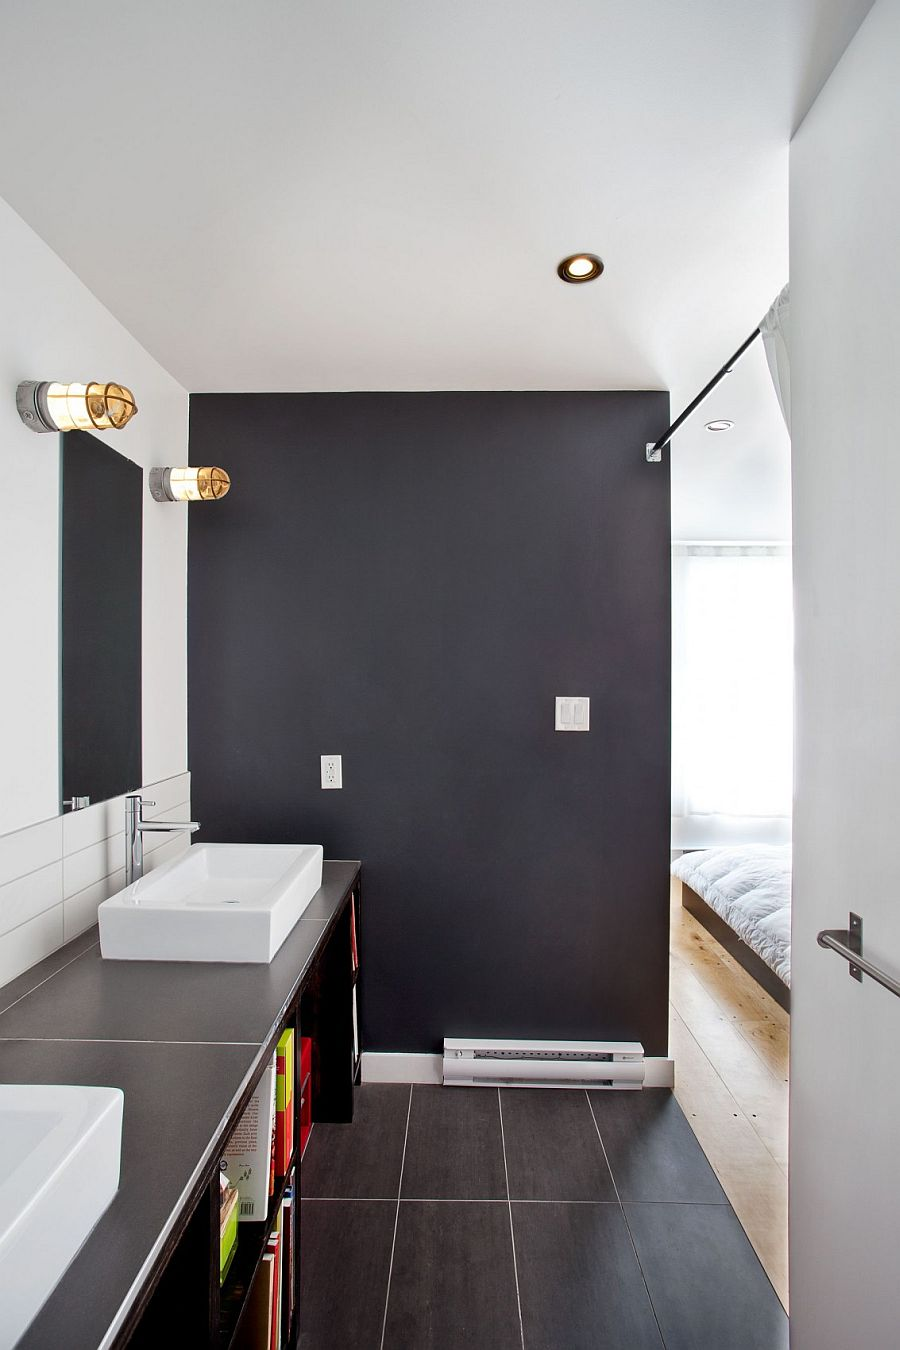 Dark bathroom connected with the white master bedroom provides visual contrast